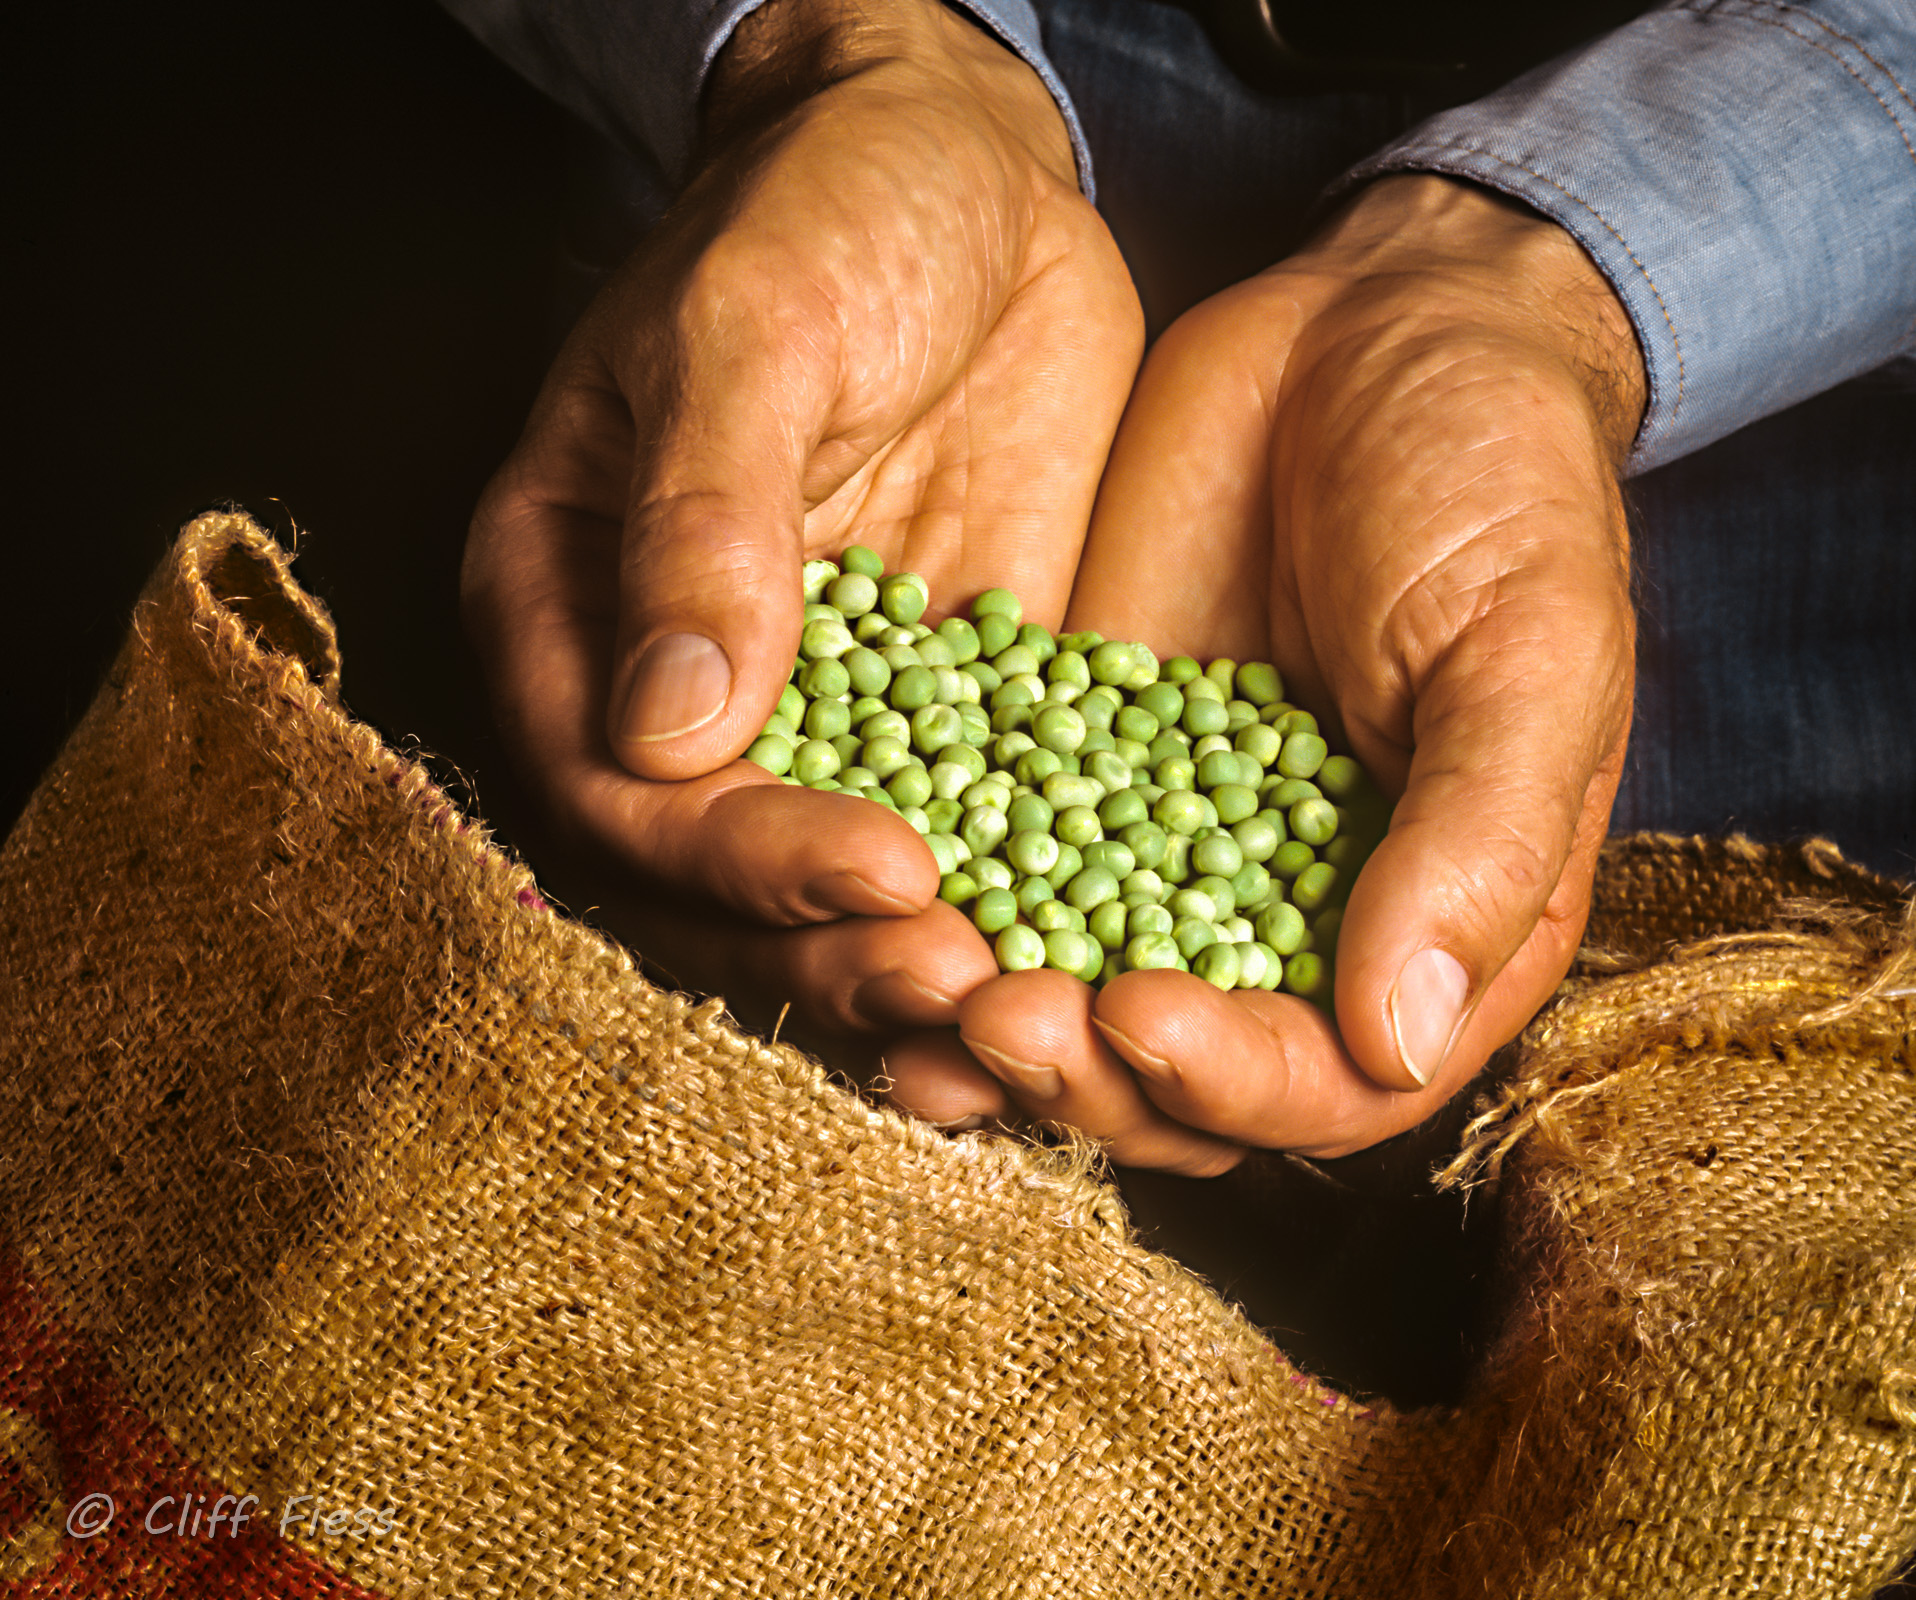 A-farmer-examining-some-peas.jpg